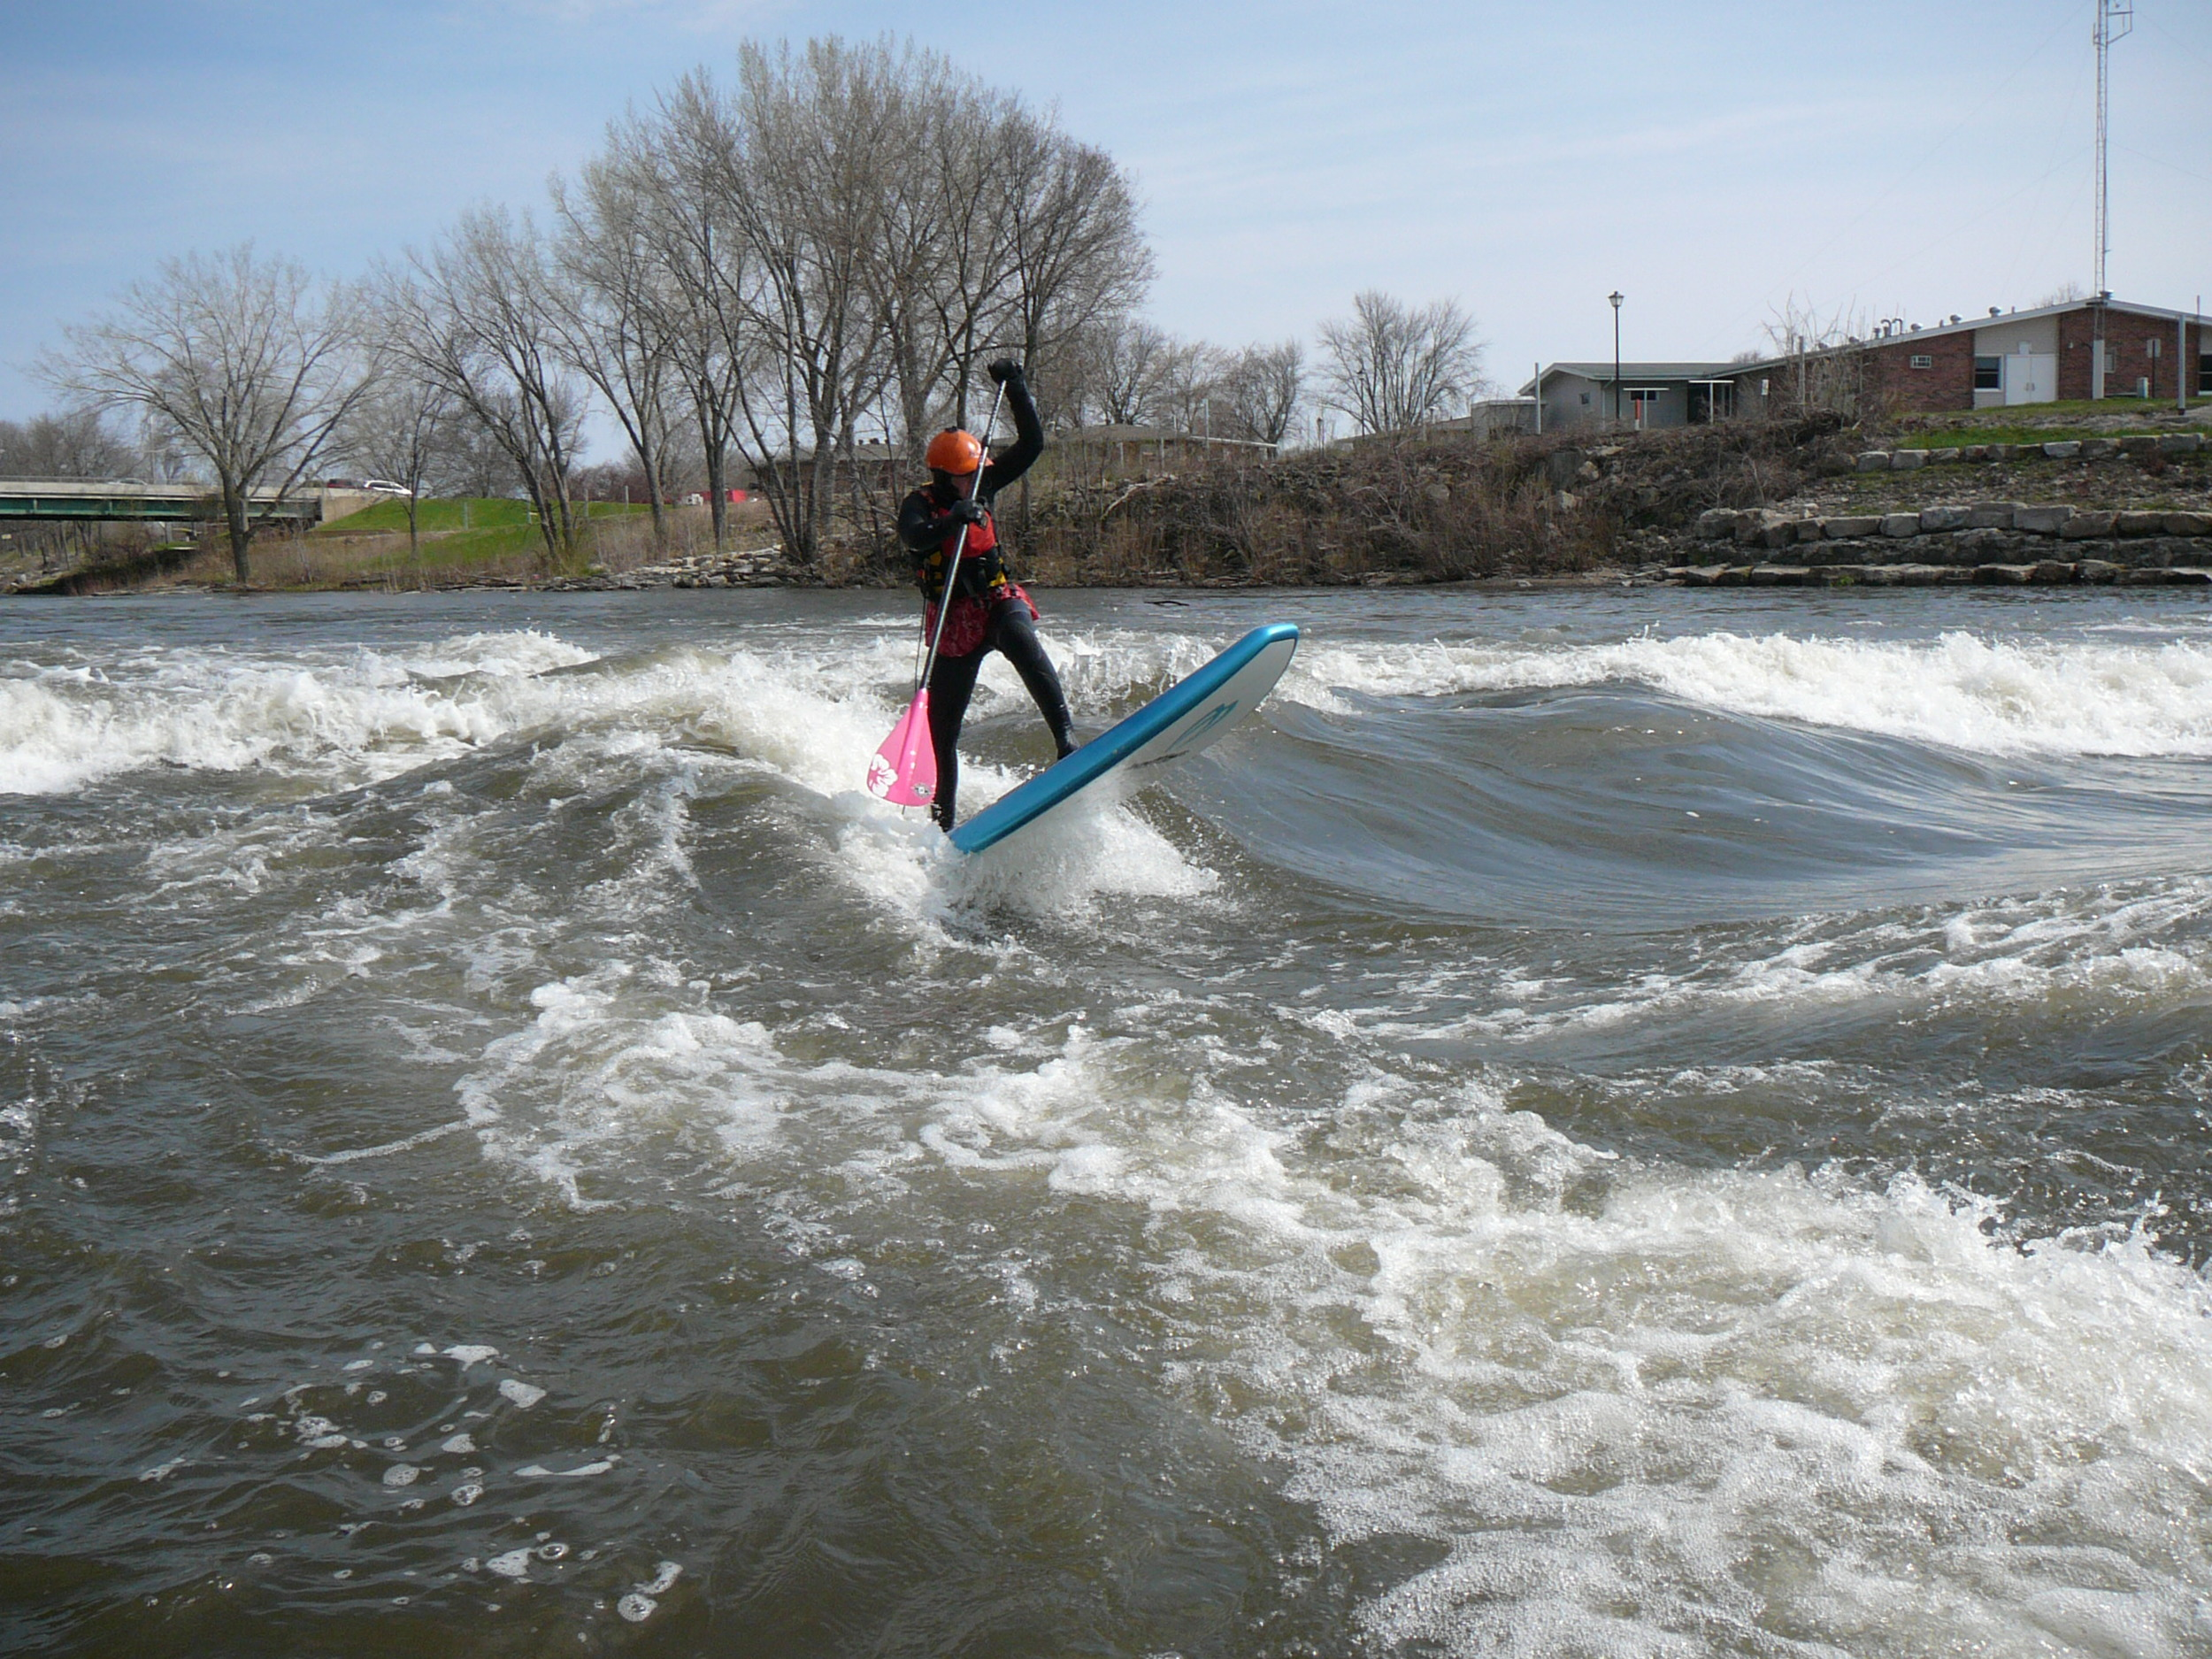 Hannah Childs river surfing in Charles City